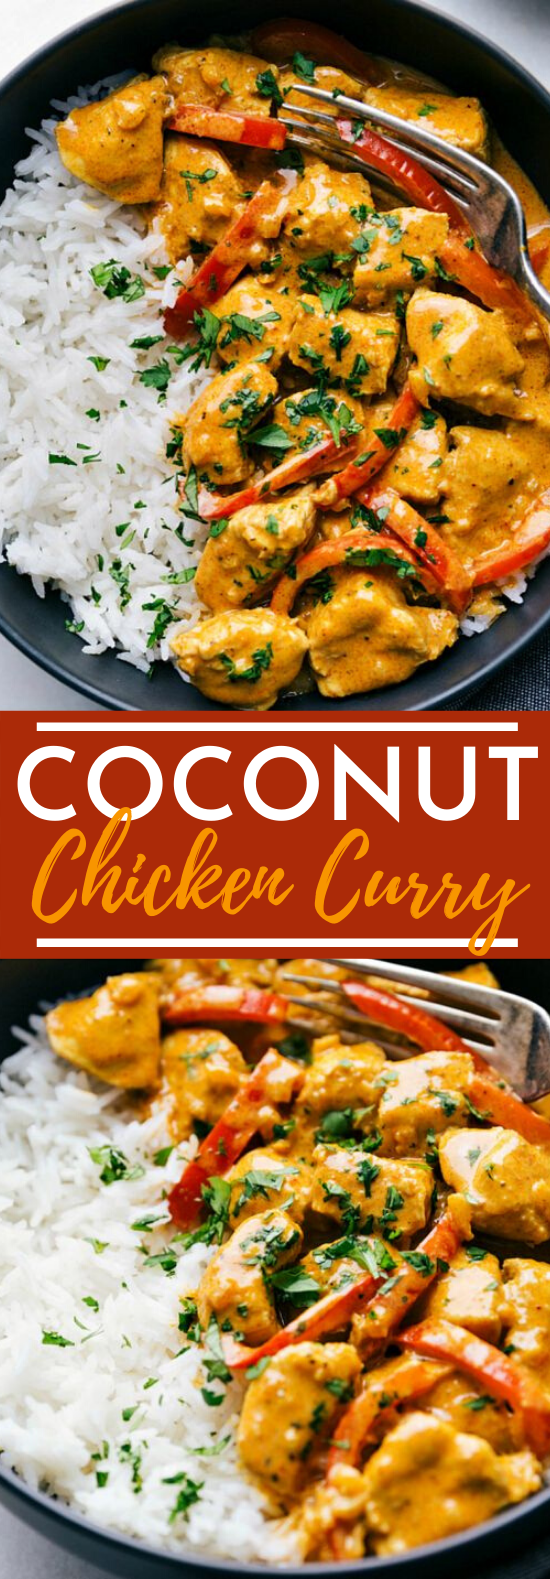 Coconut Chicken Curry #chicken #dinner #recipes #curry #weeknight